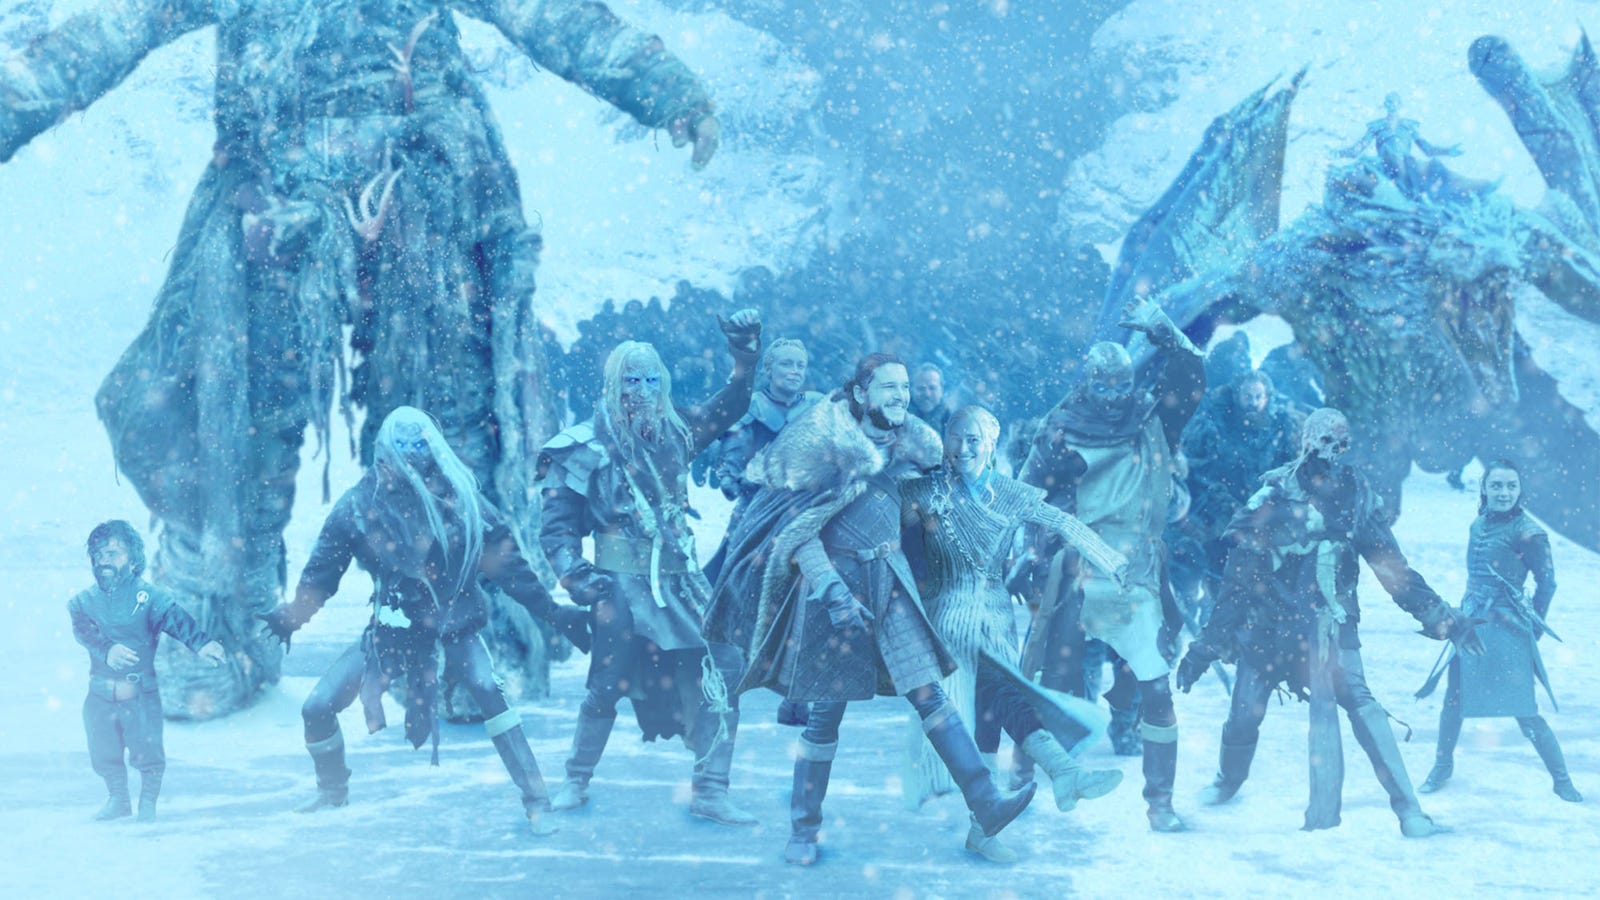 New 'Game Of Thrones' Trailer Provides Sneak Peek At Show's Climactic All-Cast Dance Number